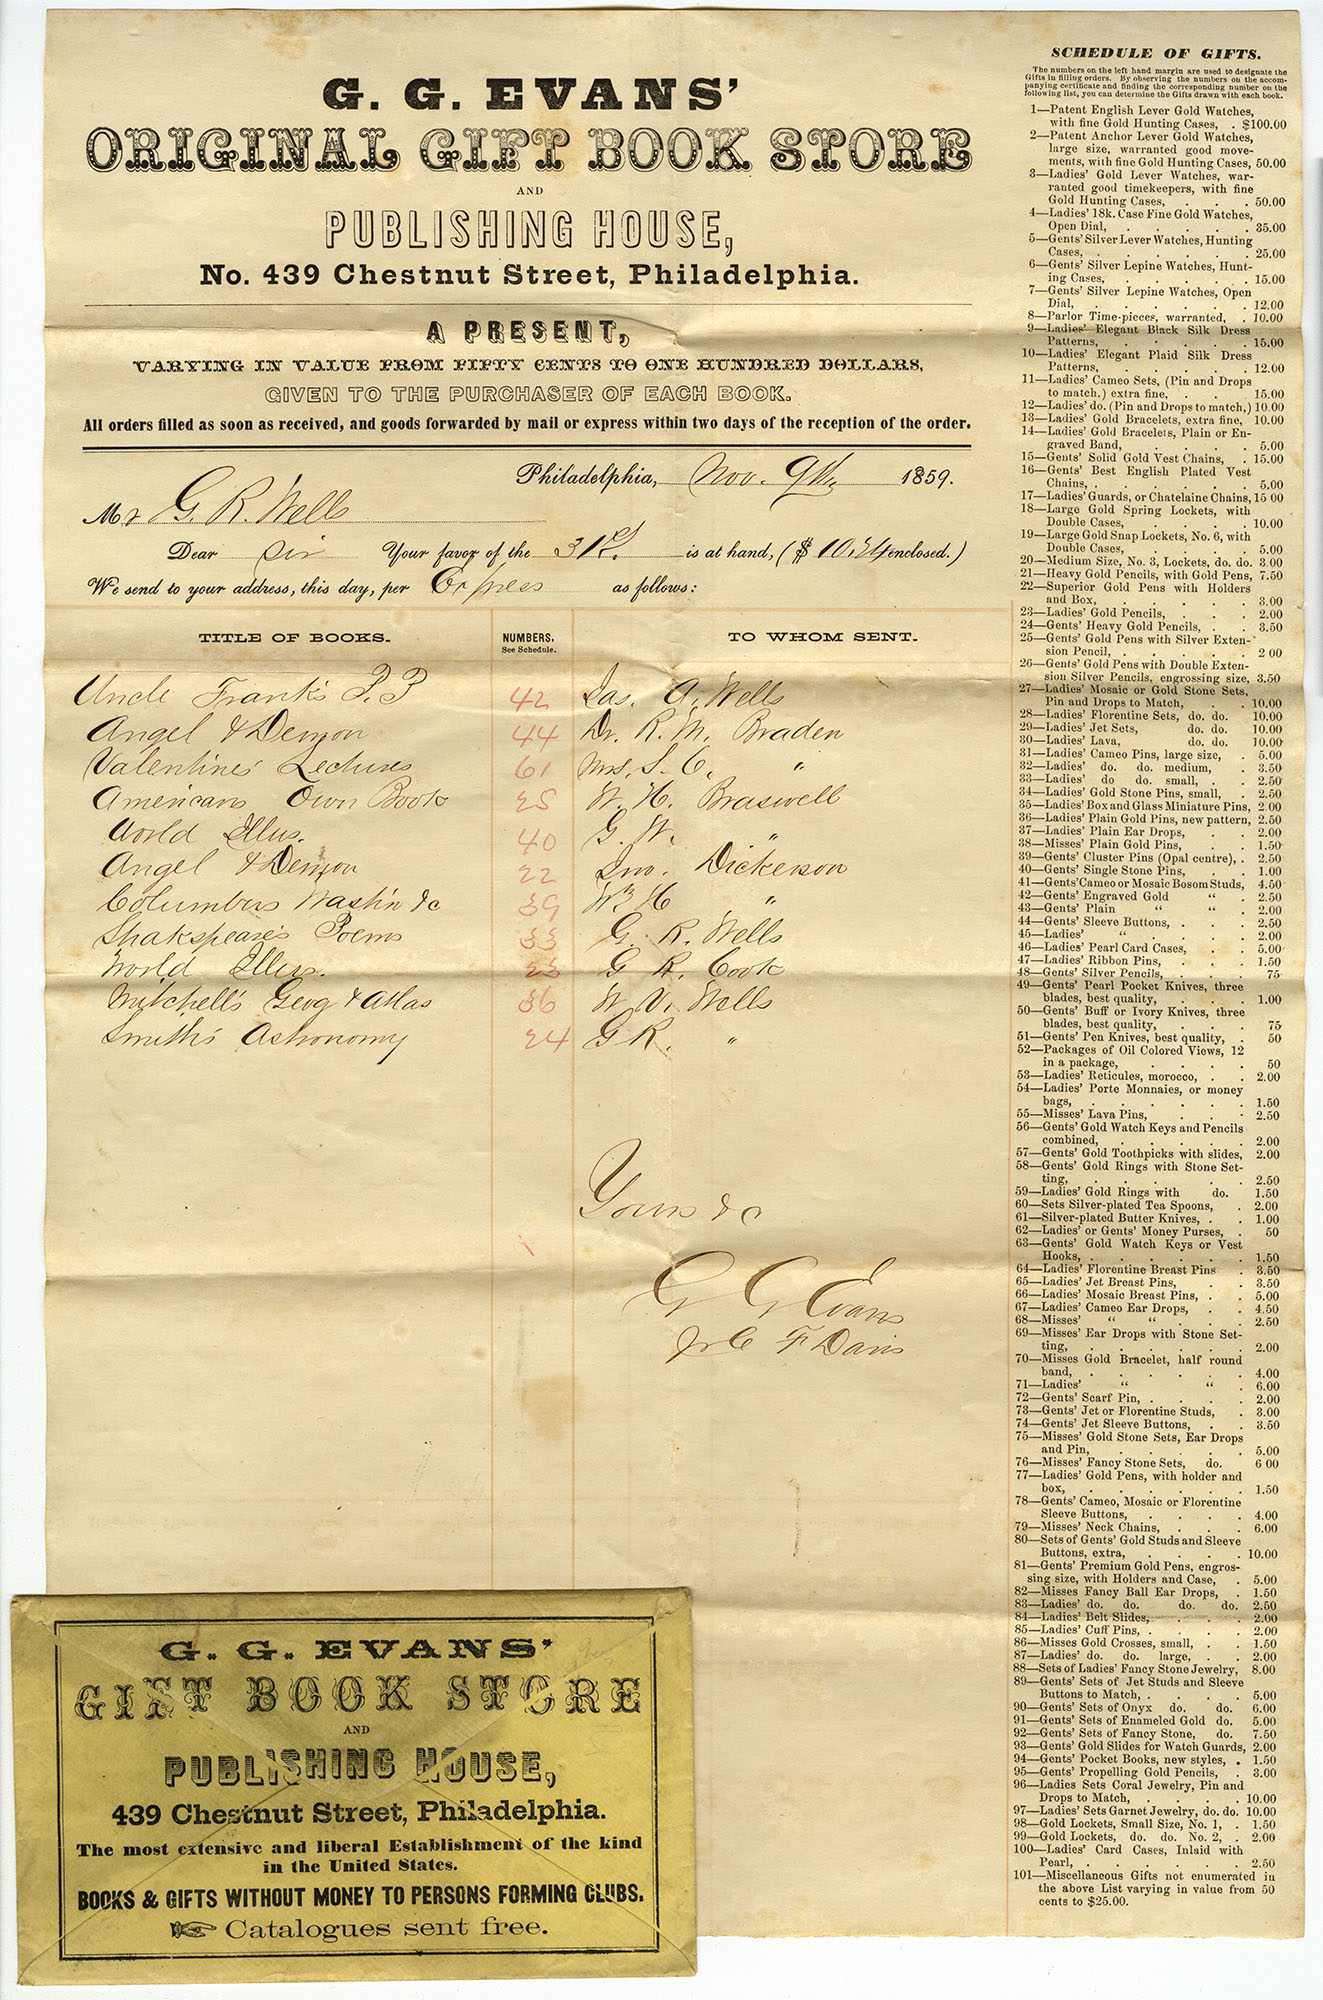 G.G. Evans' Original Gift Book Store order form (Philadelphia, 1859). Gift of Wendy Woloson.